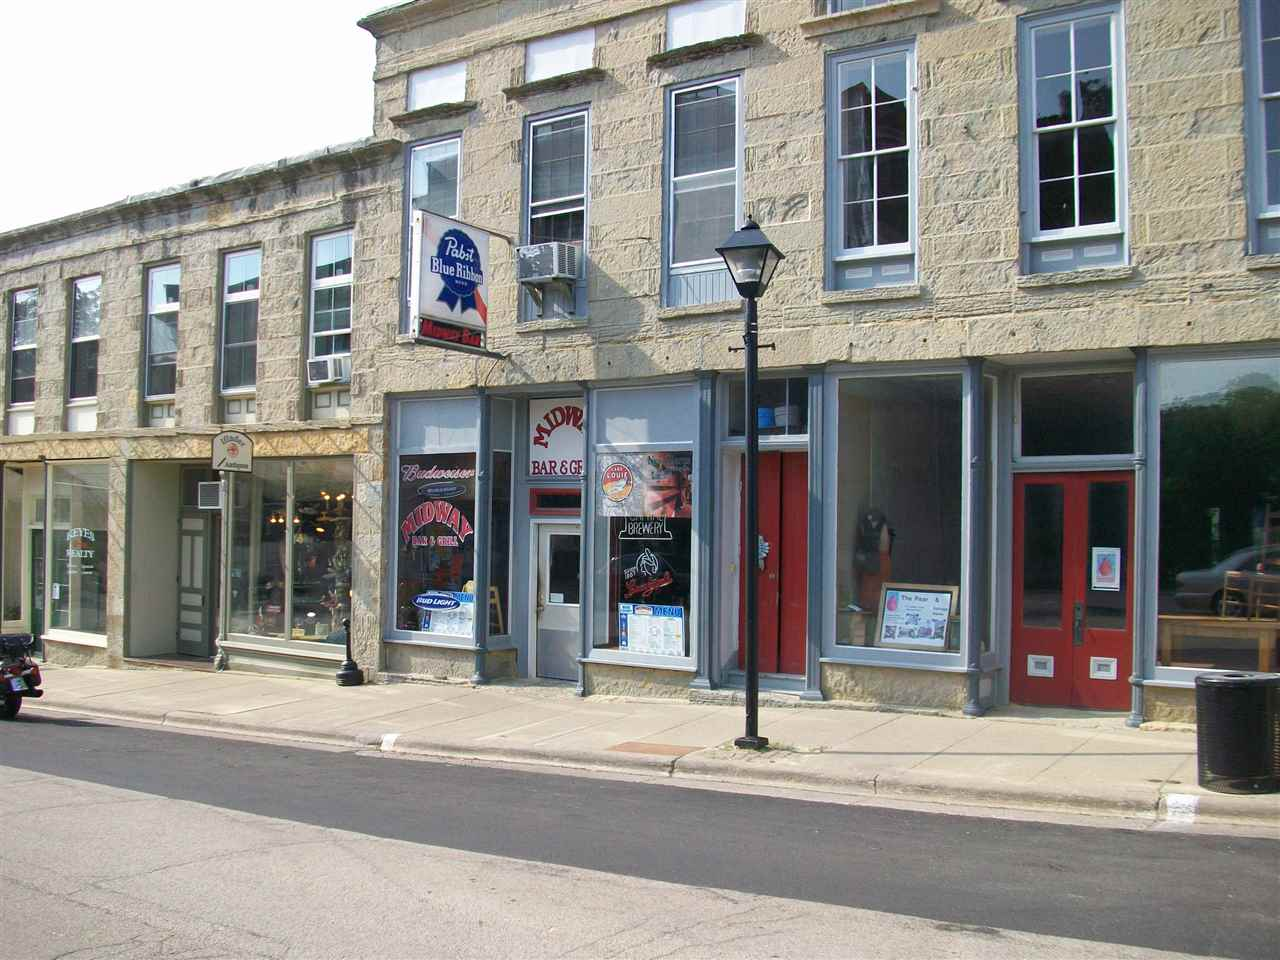 140 High St, Mineral Point, WI 53565